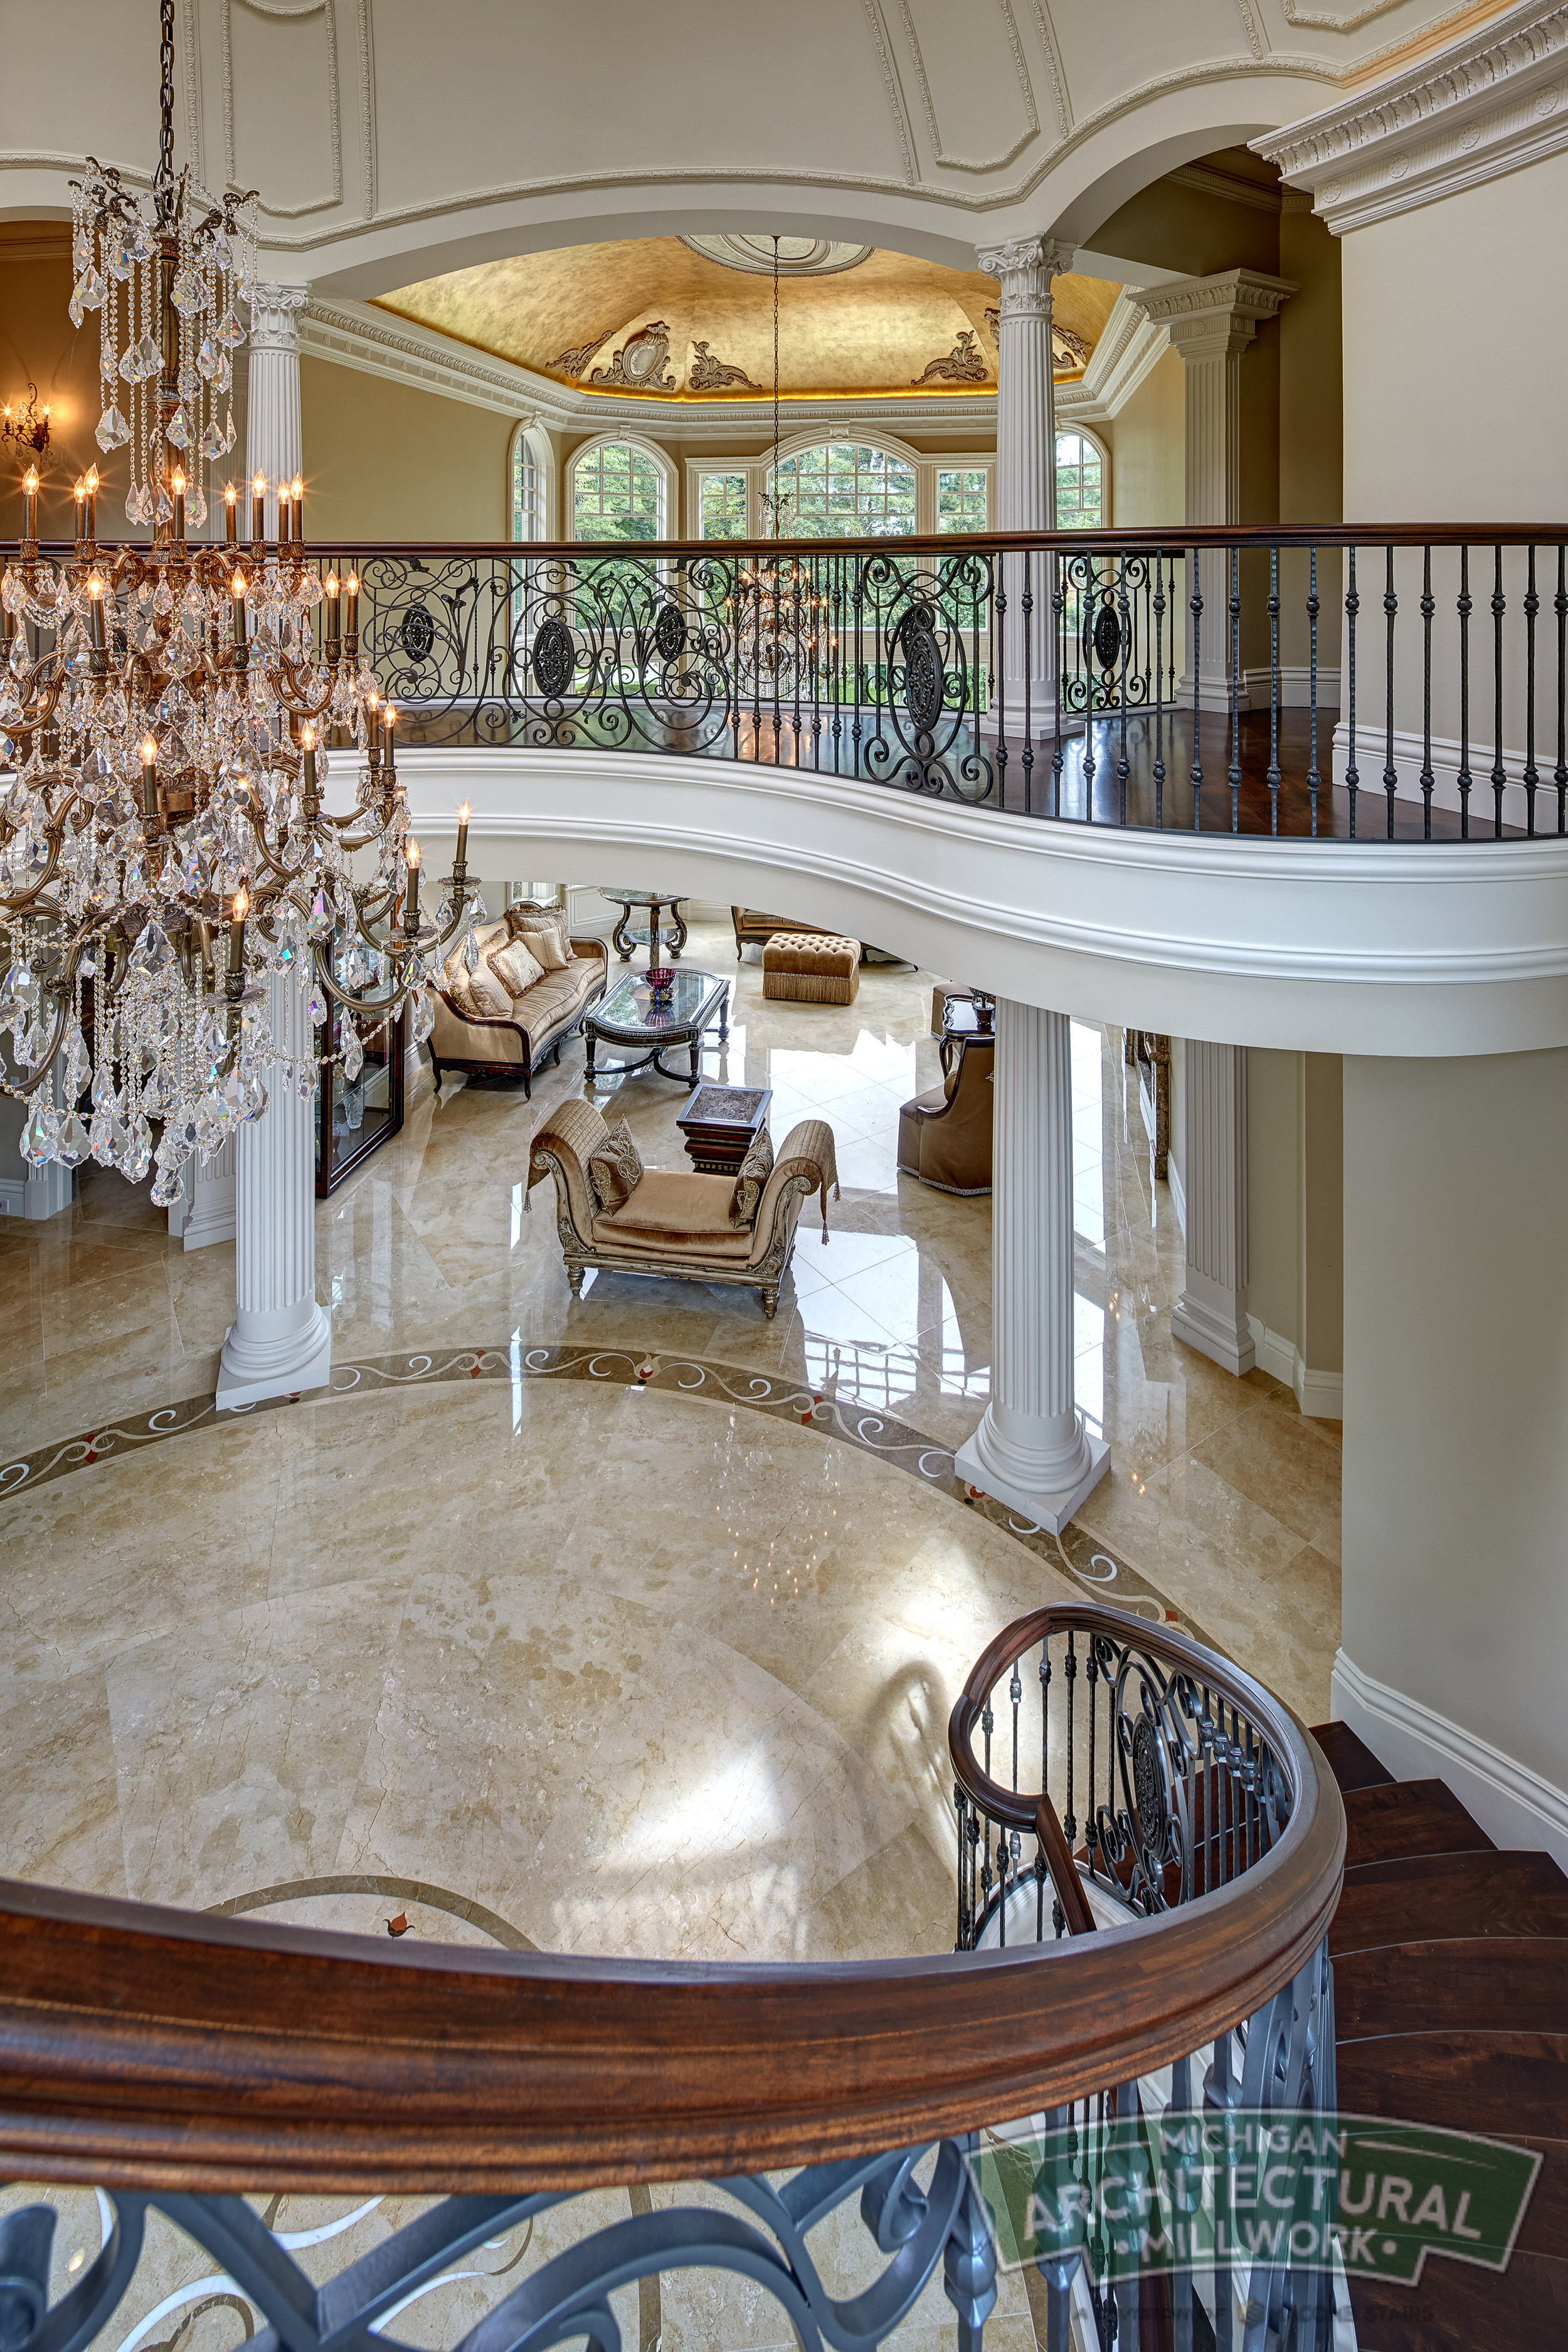 Michigan Architectural Millwork- Moulding and Millwork Photo-111.jpg